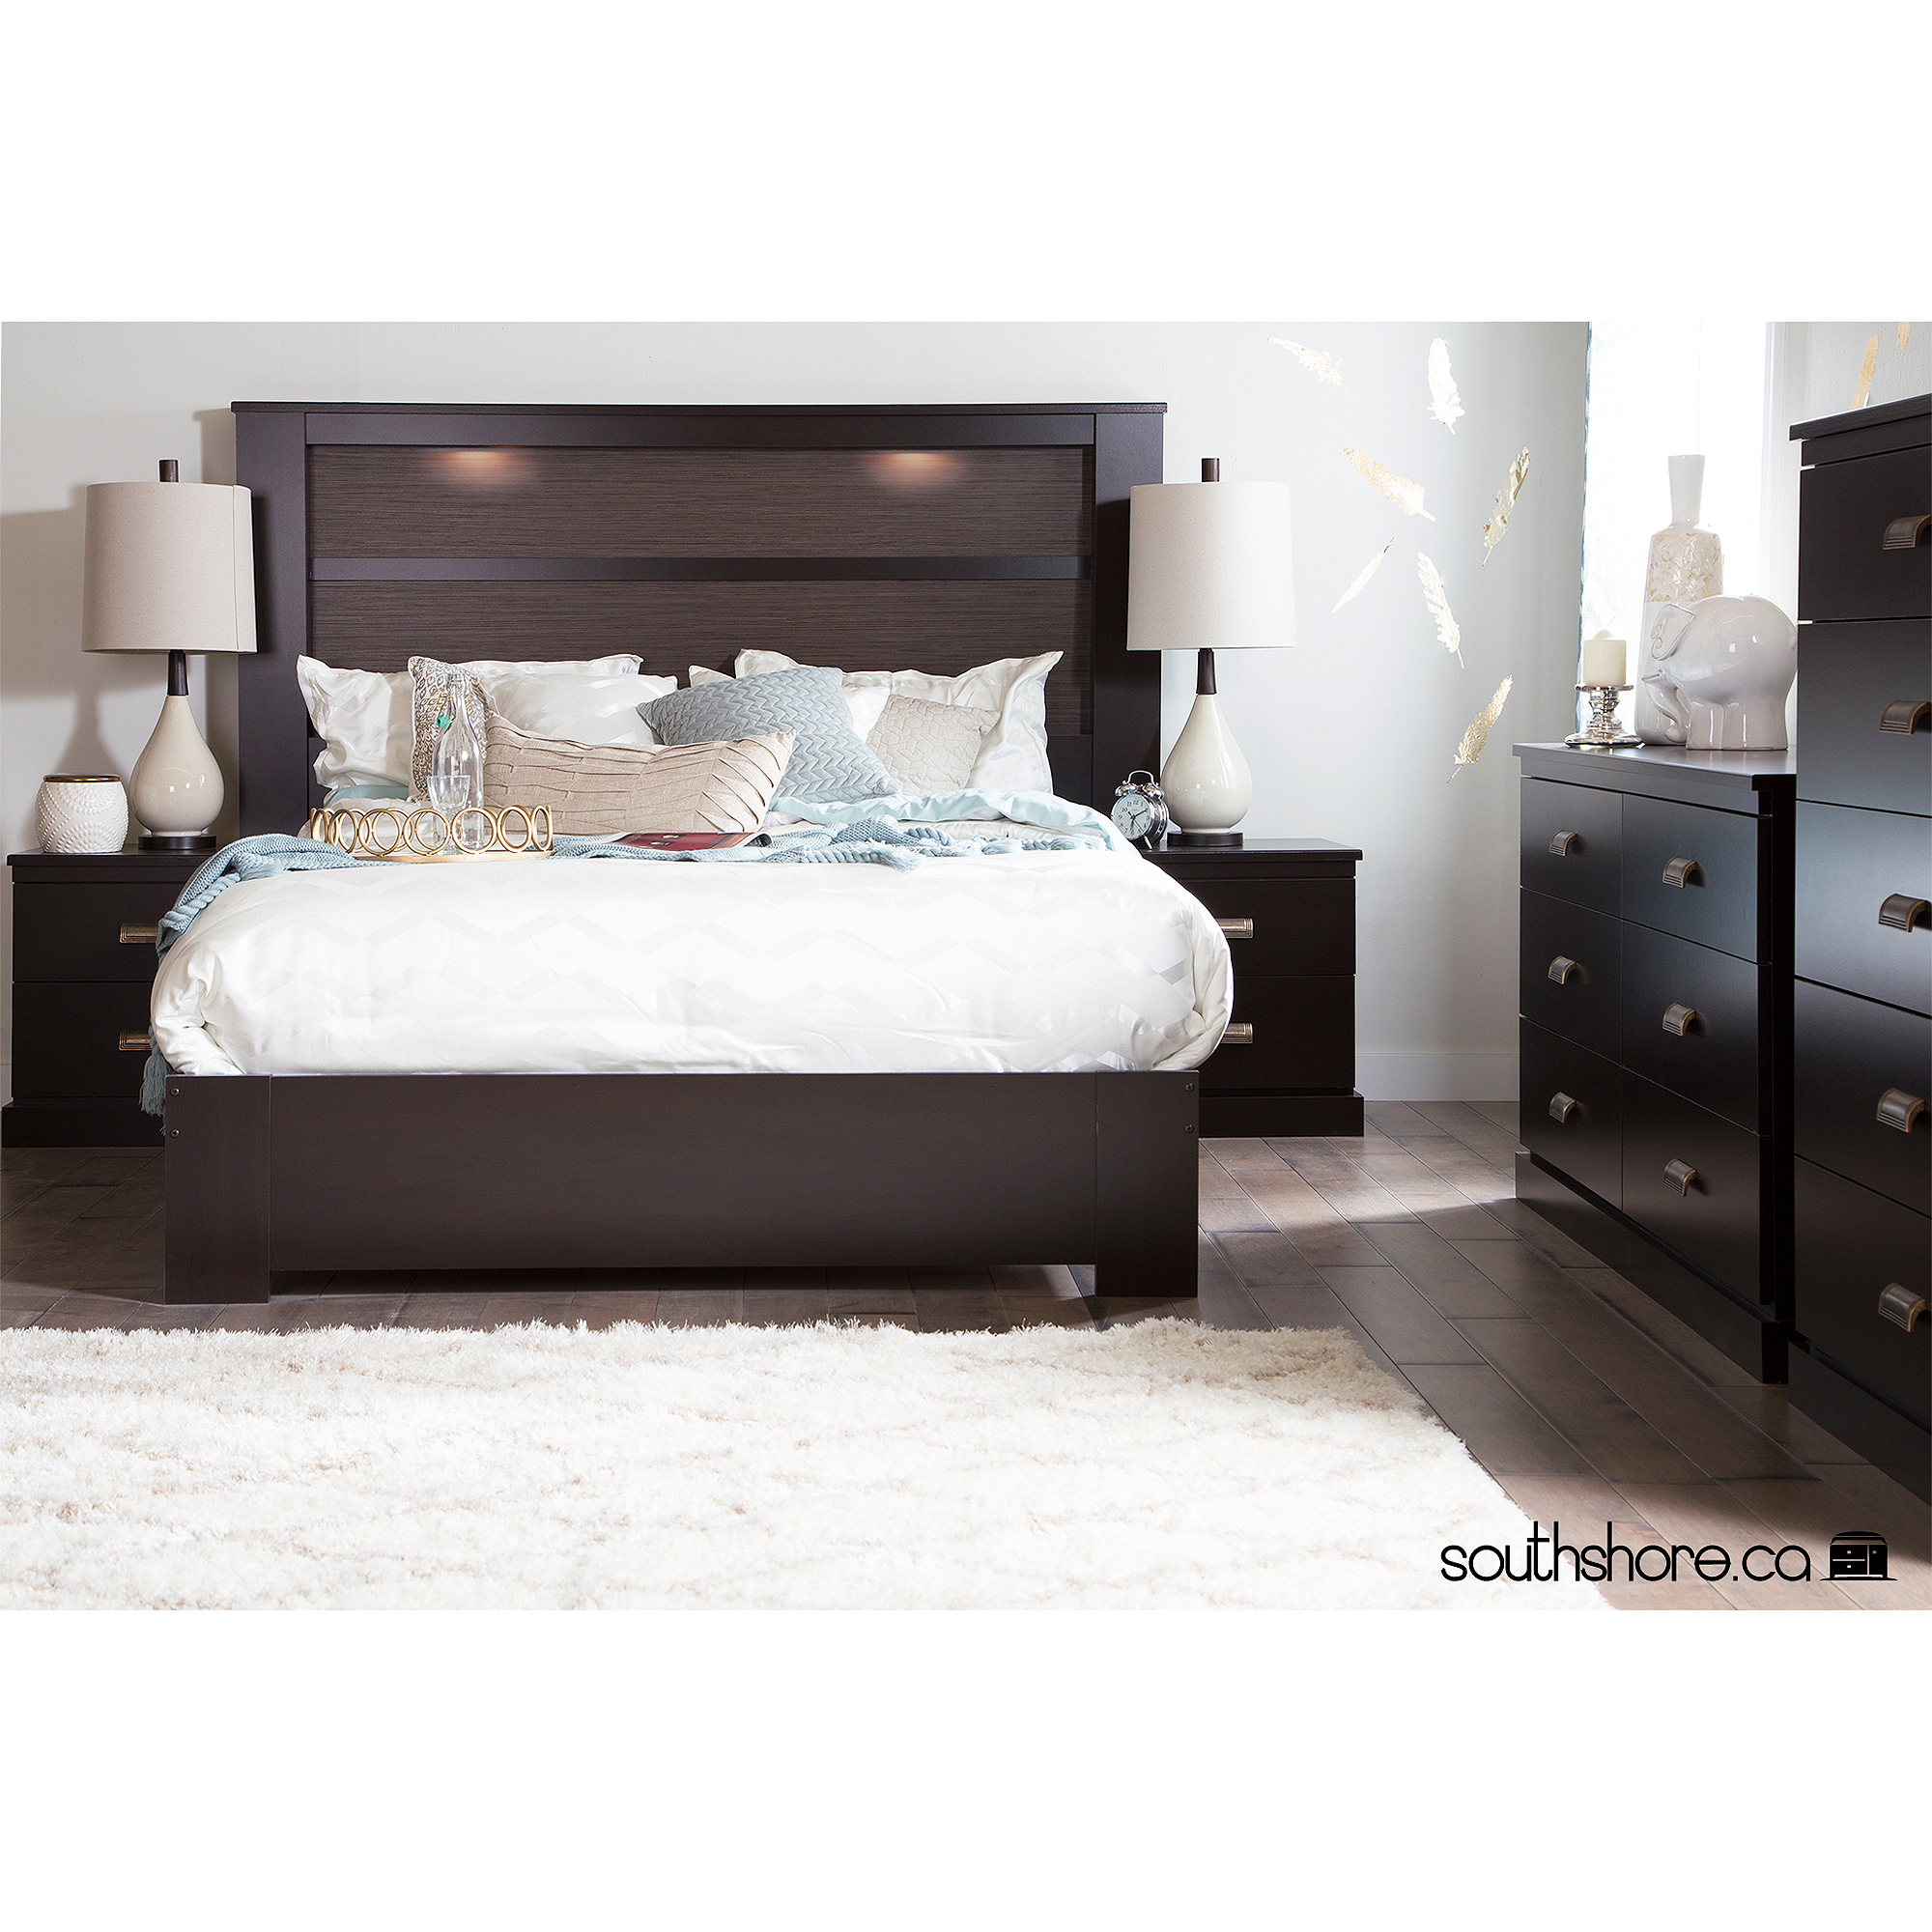 Queen platform bed with headboard - South Shore Gloria King Headboard And Queen Platform Bed Multiple Finishes Walmart Com